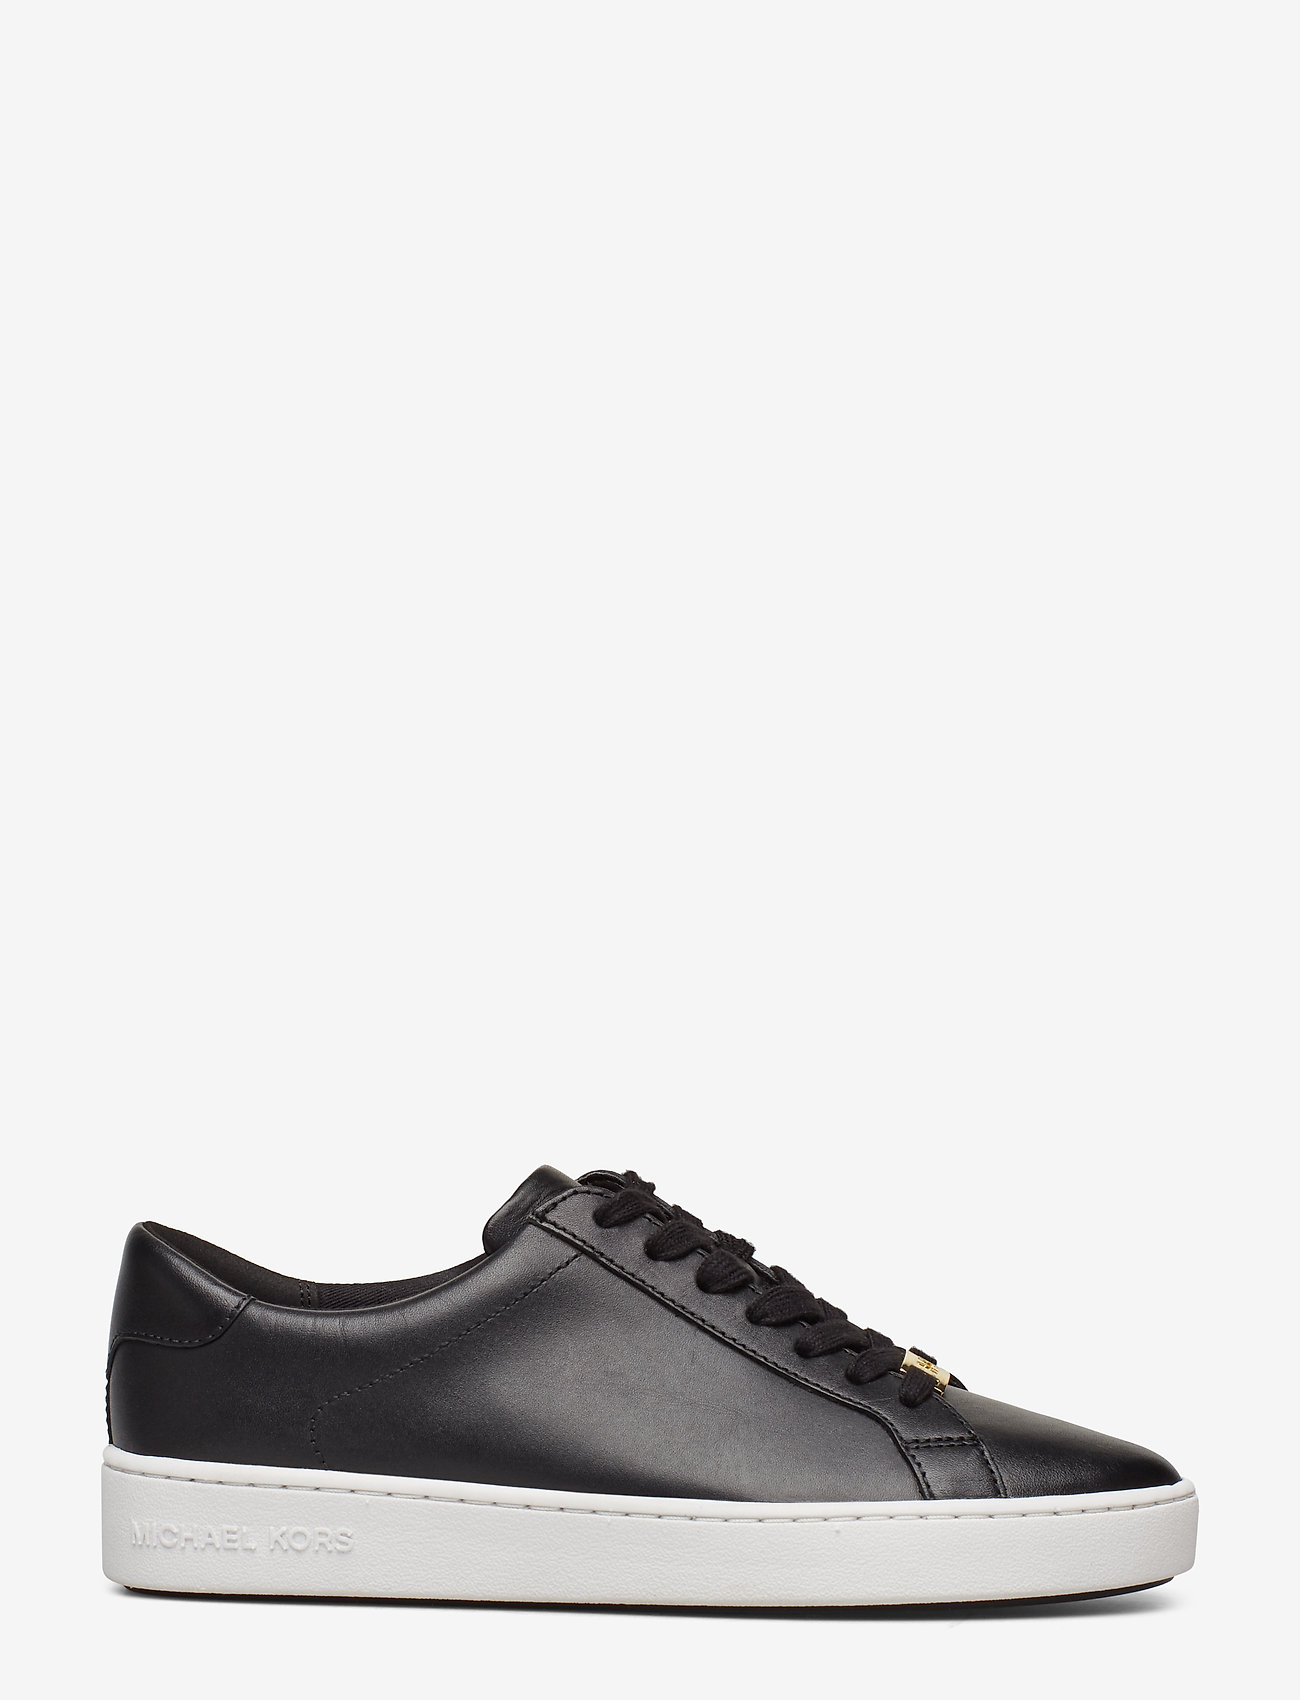 Michael Kors - IRVING LACE UP - lage sneakers - black - 1